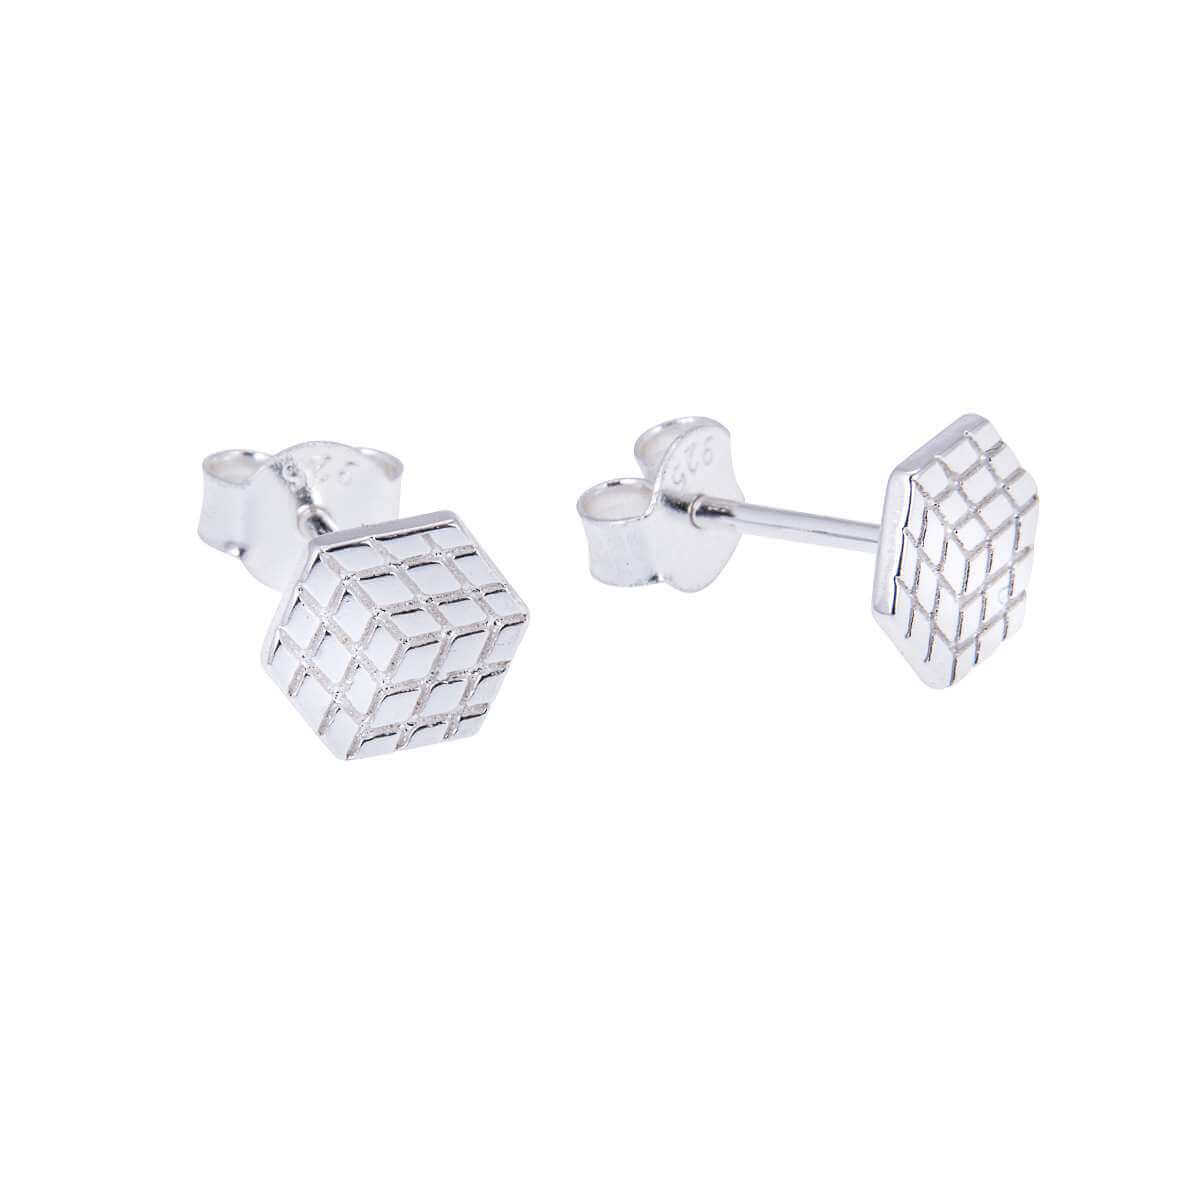 Sterling Silver Flat 3D Cube Stud Earrings